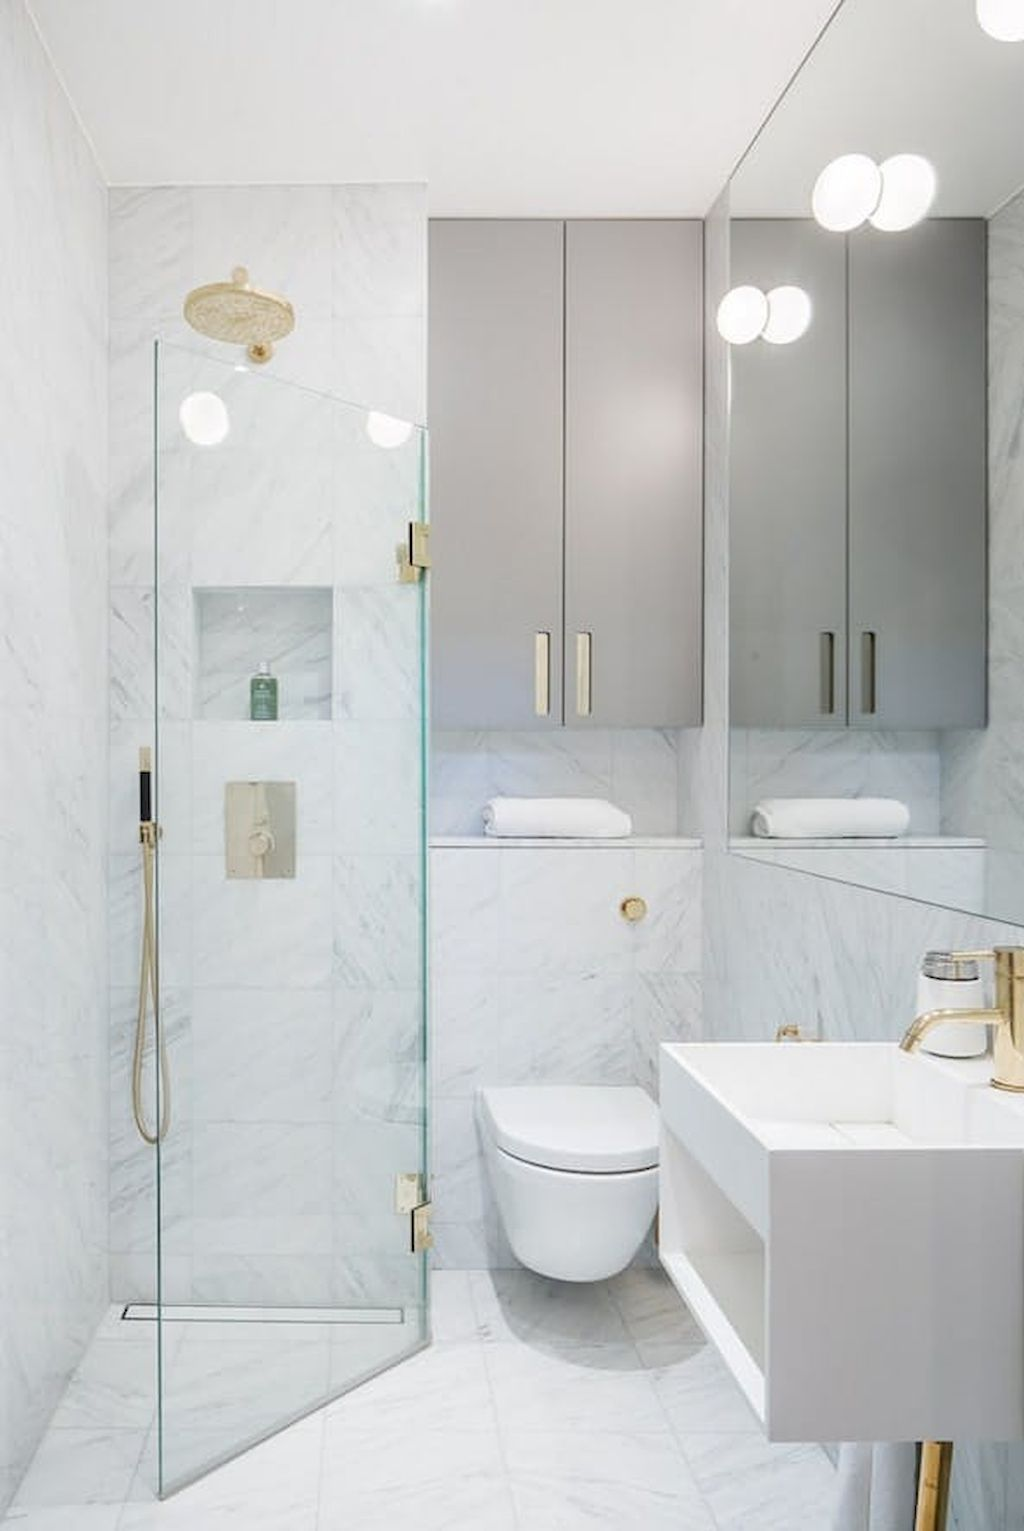 Best small bathroom remodel ideas on a budget (5   decor projects ...